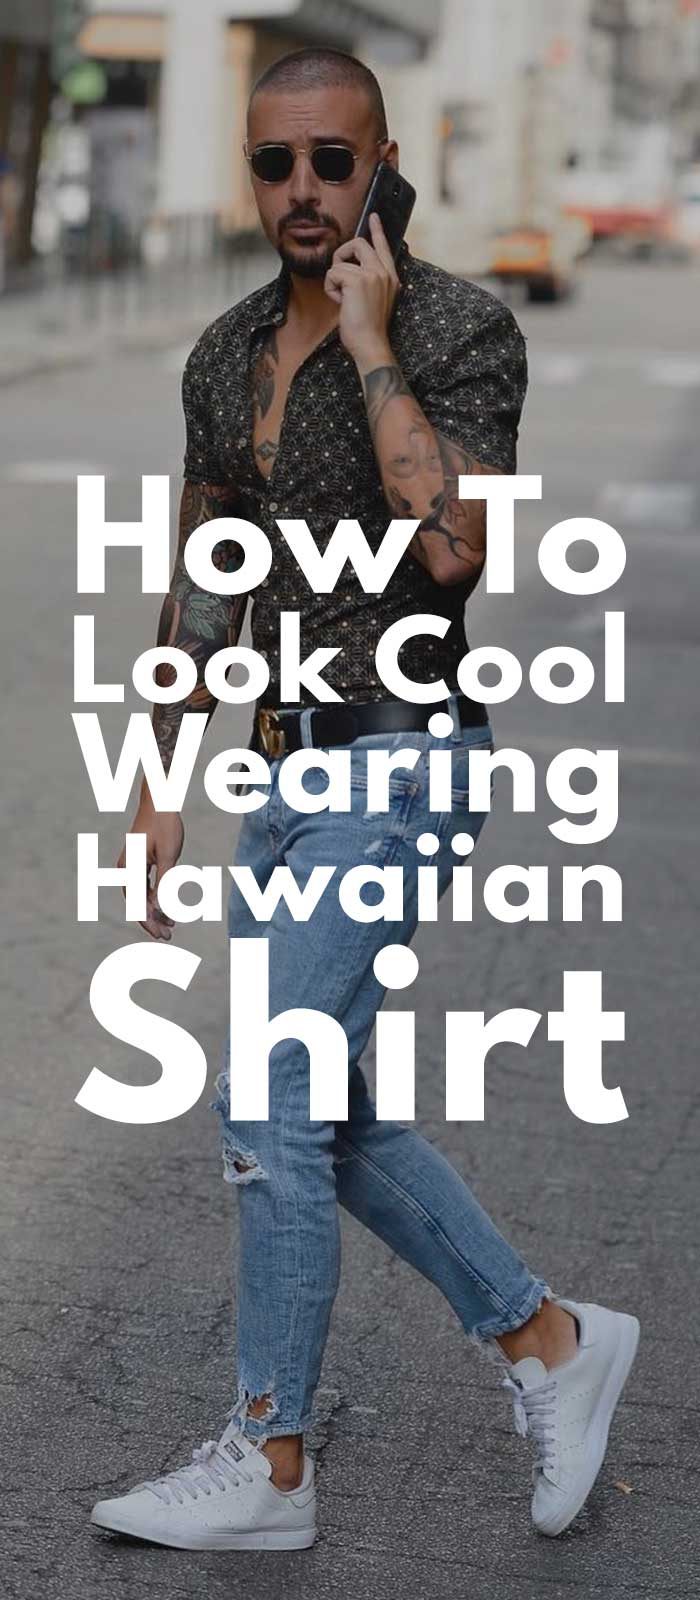 How To Look Cool Wearing Hawaiian Shirt